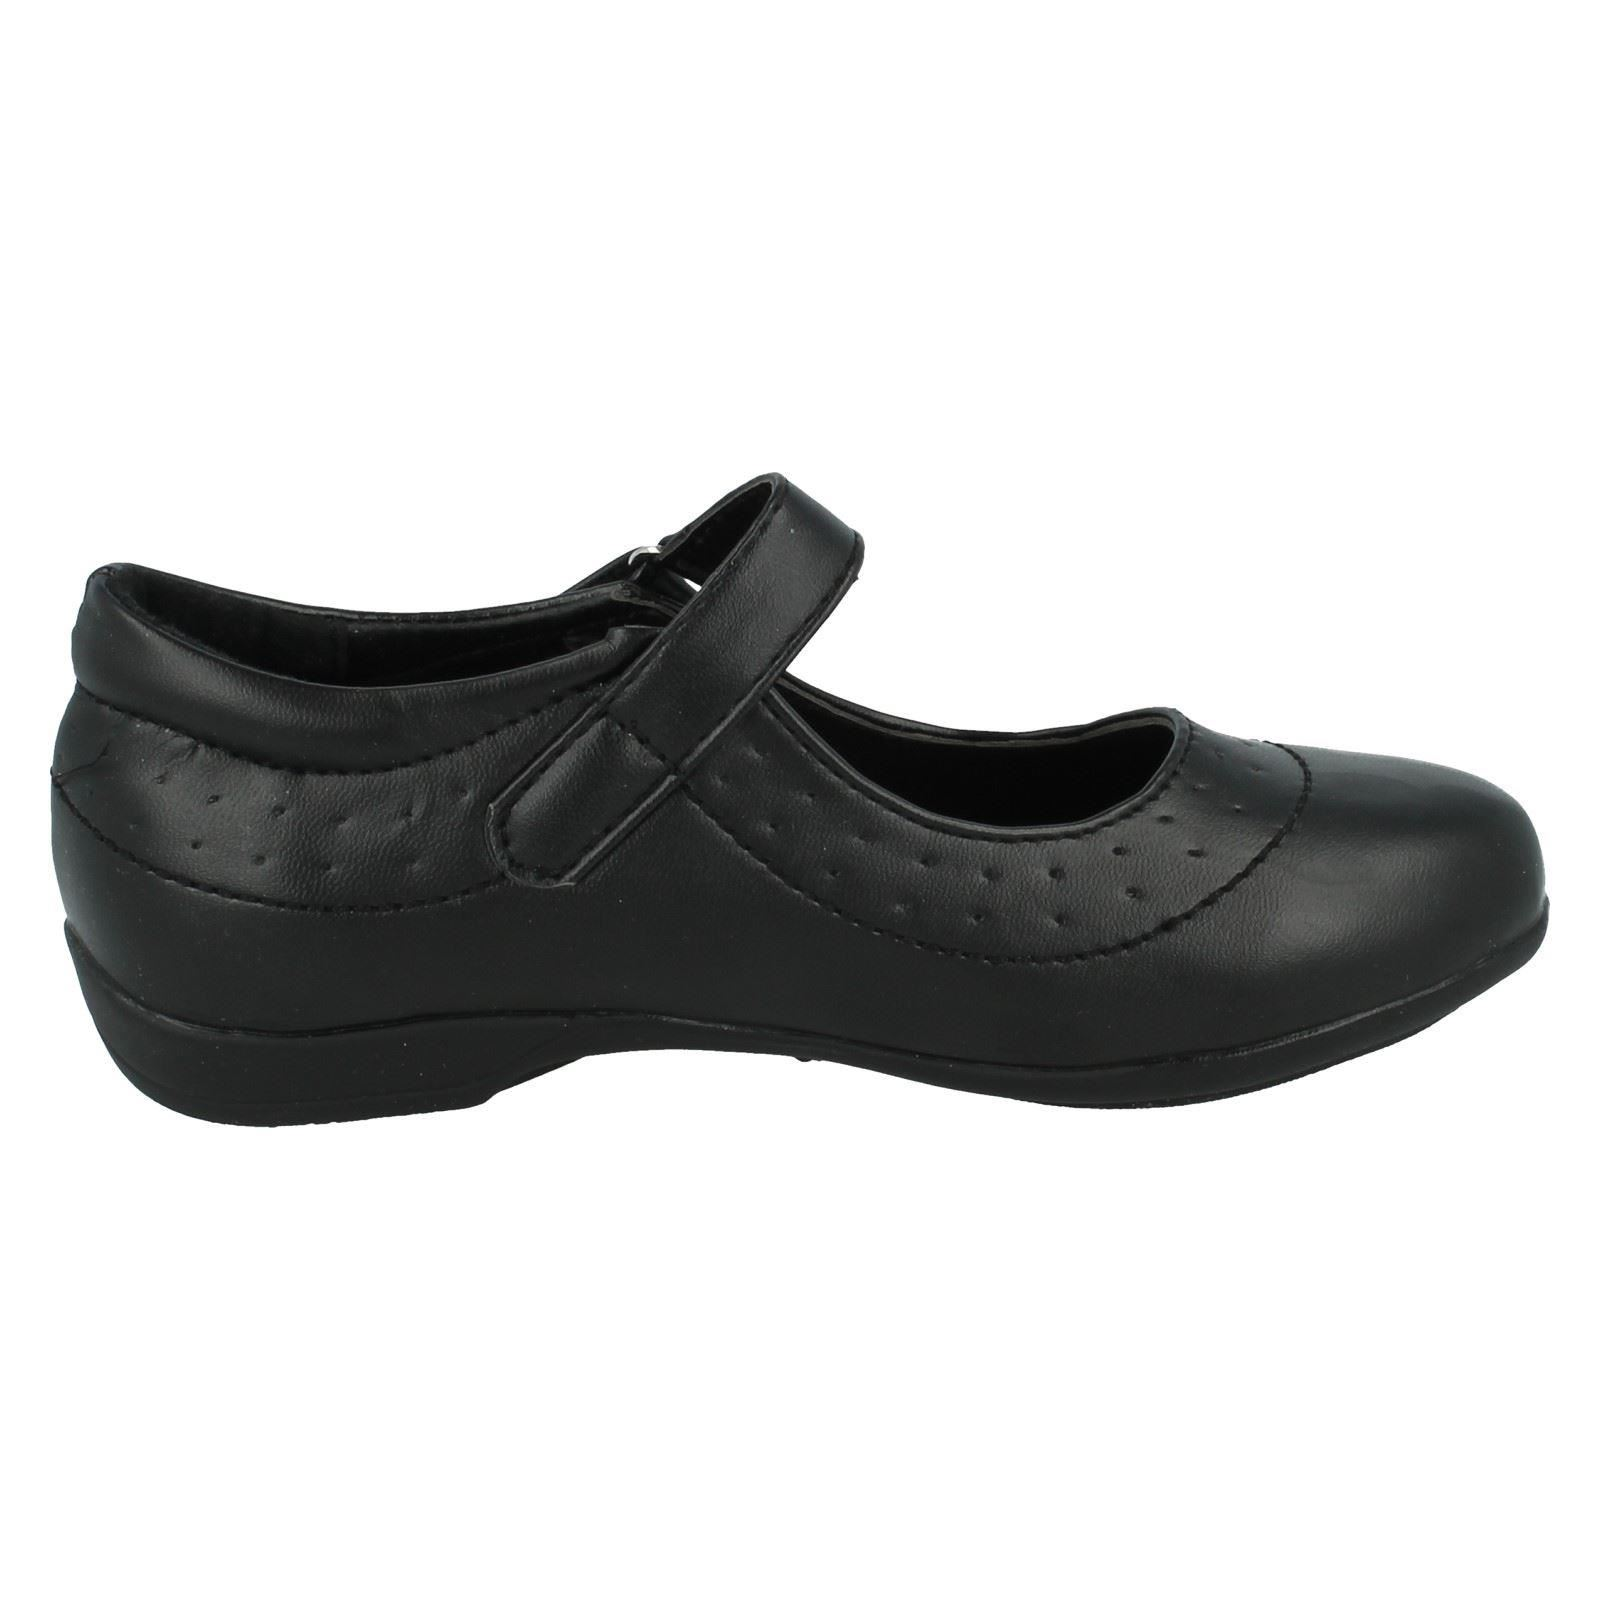 Girls Spot On Shoes The Style - H2337